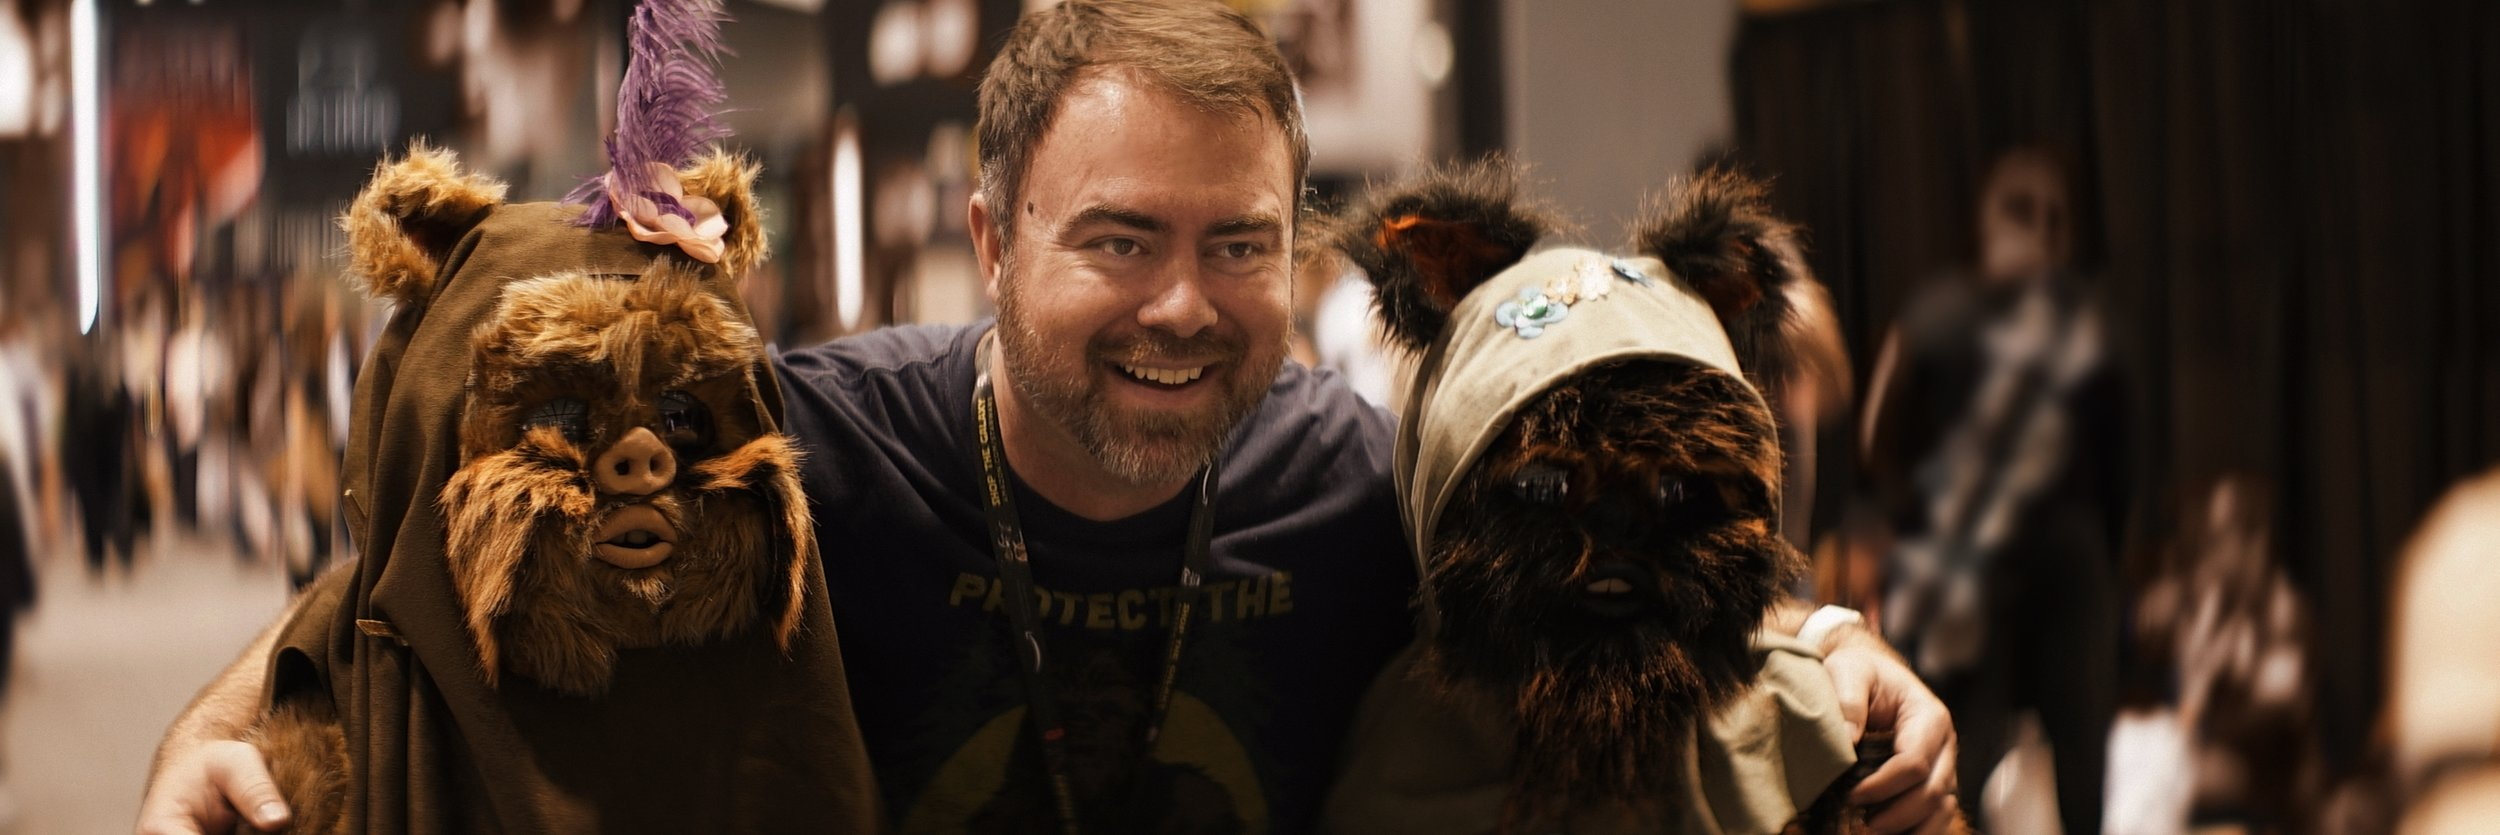 Lomo 75mm Anamorphic Lens | Star Wars Celebration Chicago - SWCC | Alan Brown, the host of Star Wars 20, and creator of Forcechella, poses with some Ewoks. Olivia and I became fast friends with Alan and his co-host Jon Chiado when we bonded over Reylo. You can find their Star Wars content here:    Star Wars 20 YouTube    and on the web:    starwars20.net